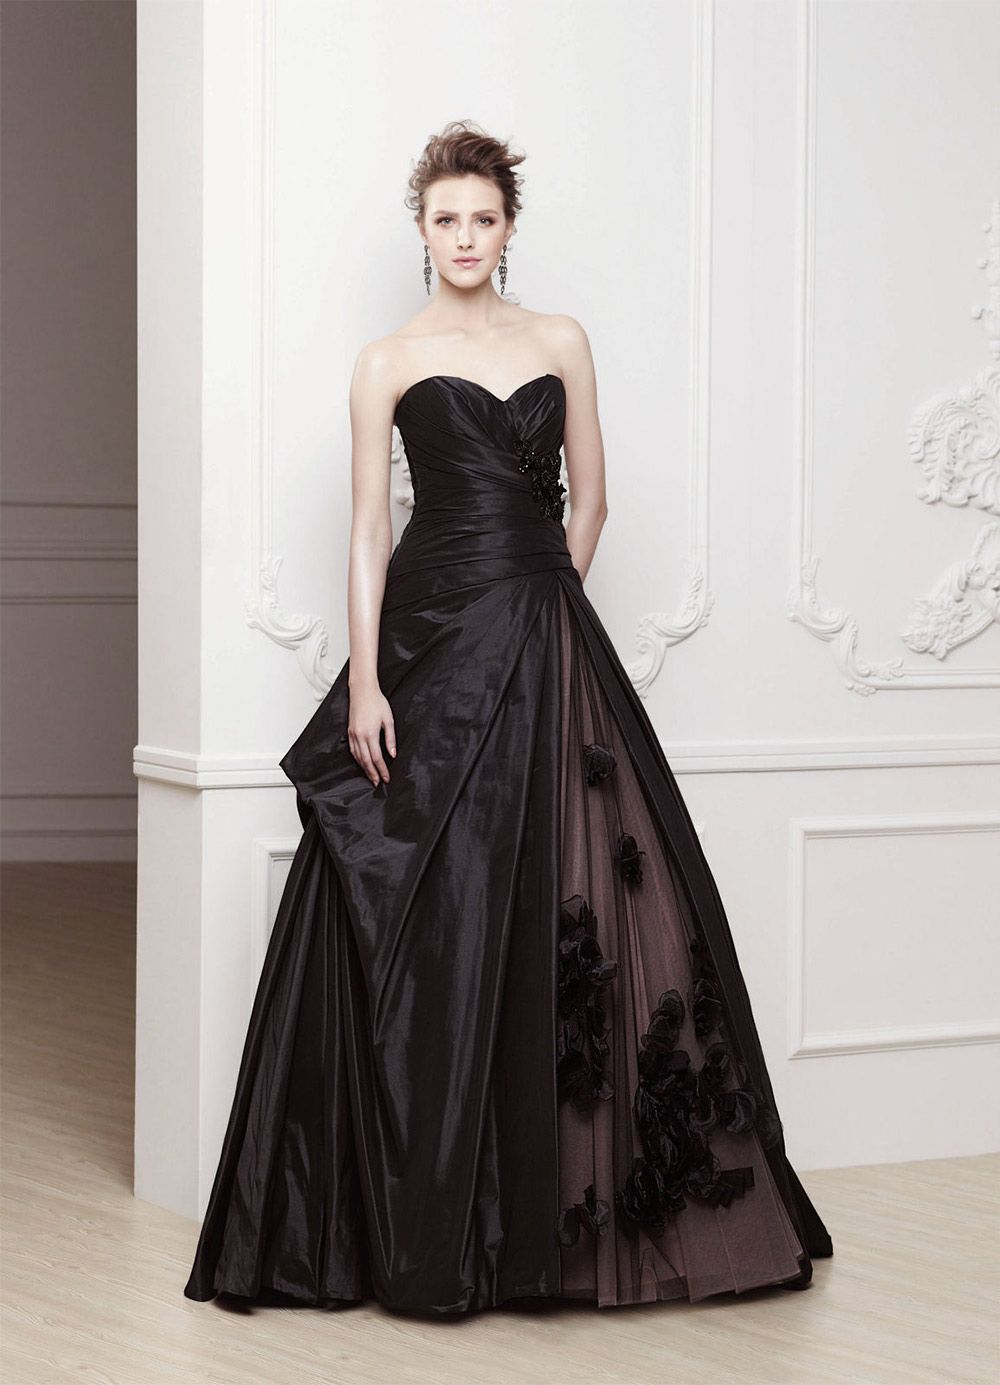 Gothic style wedding dresses  Go for some chic gothic style in this black satin Odessa wedding